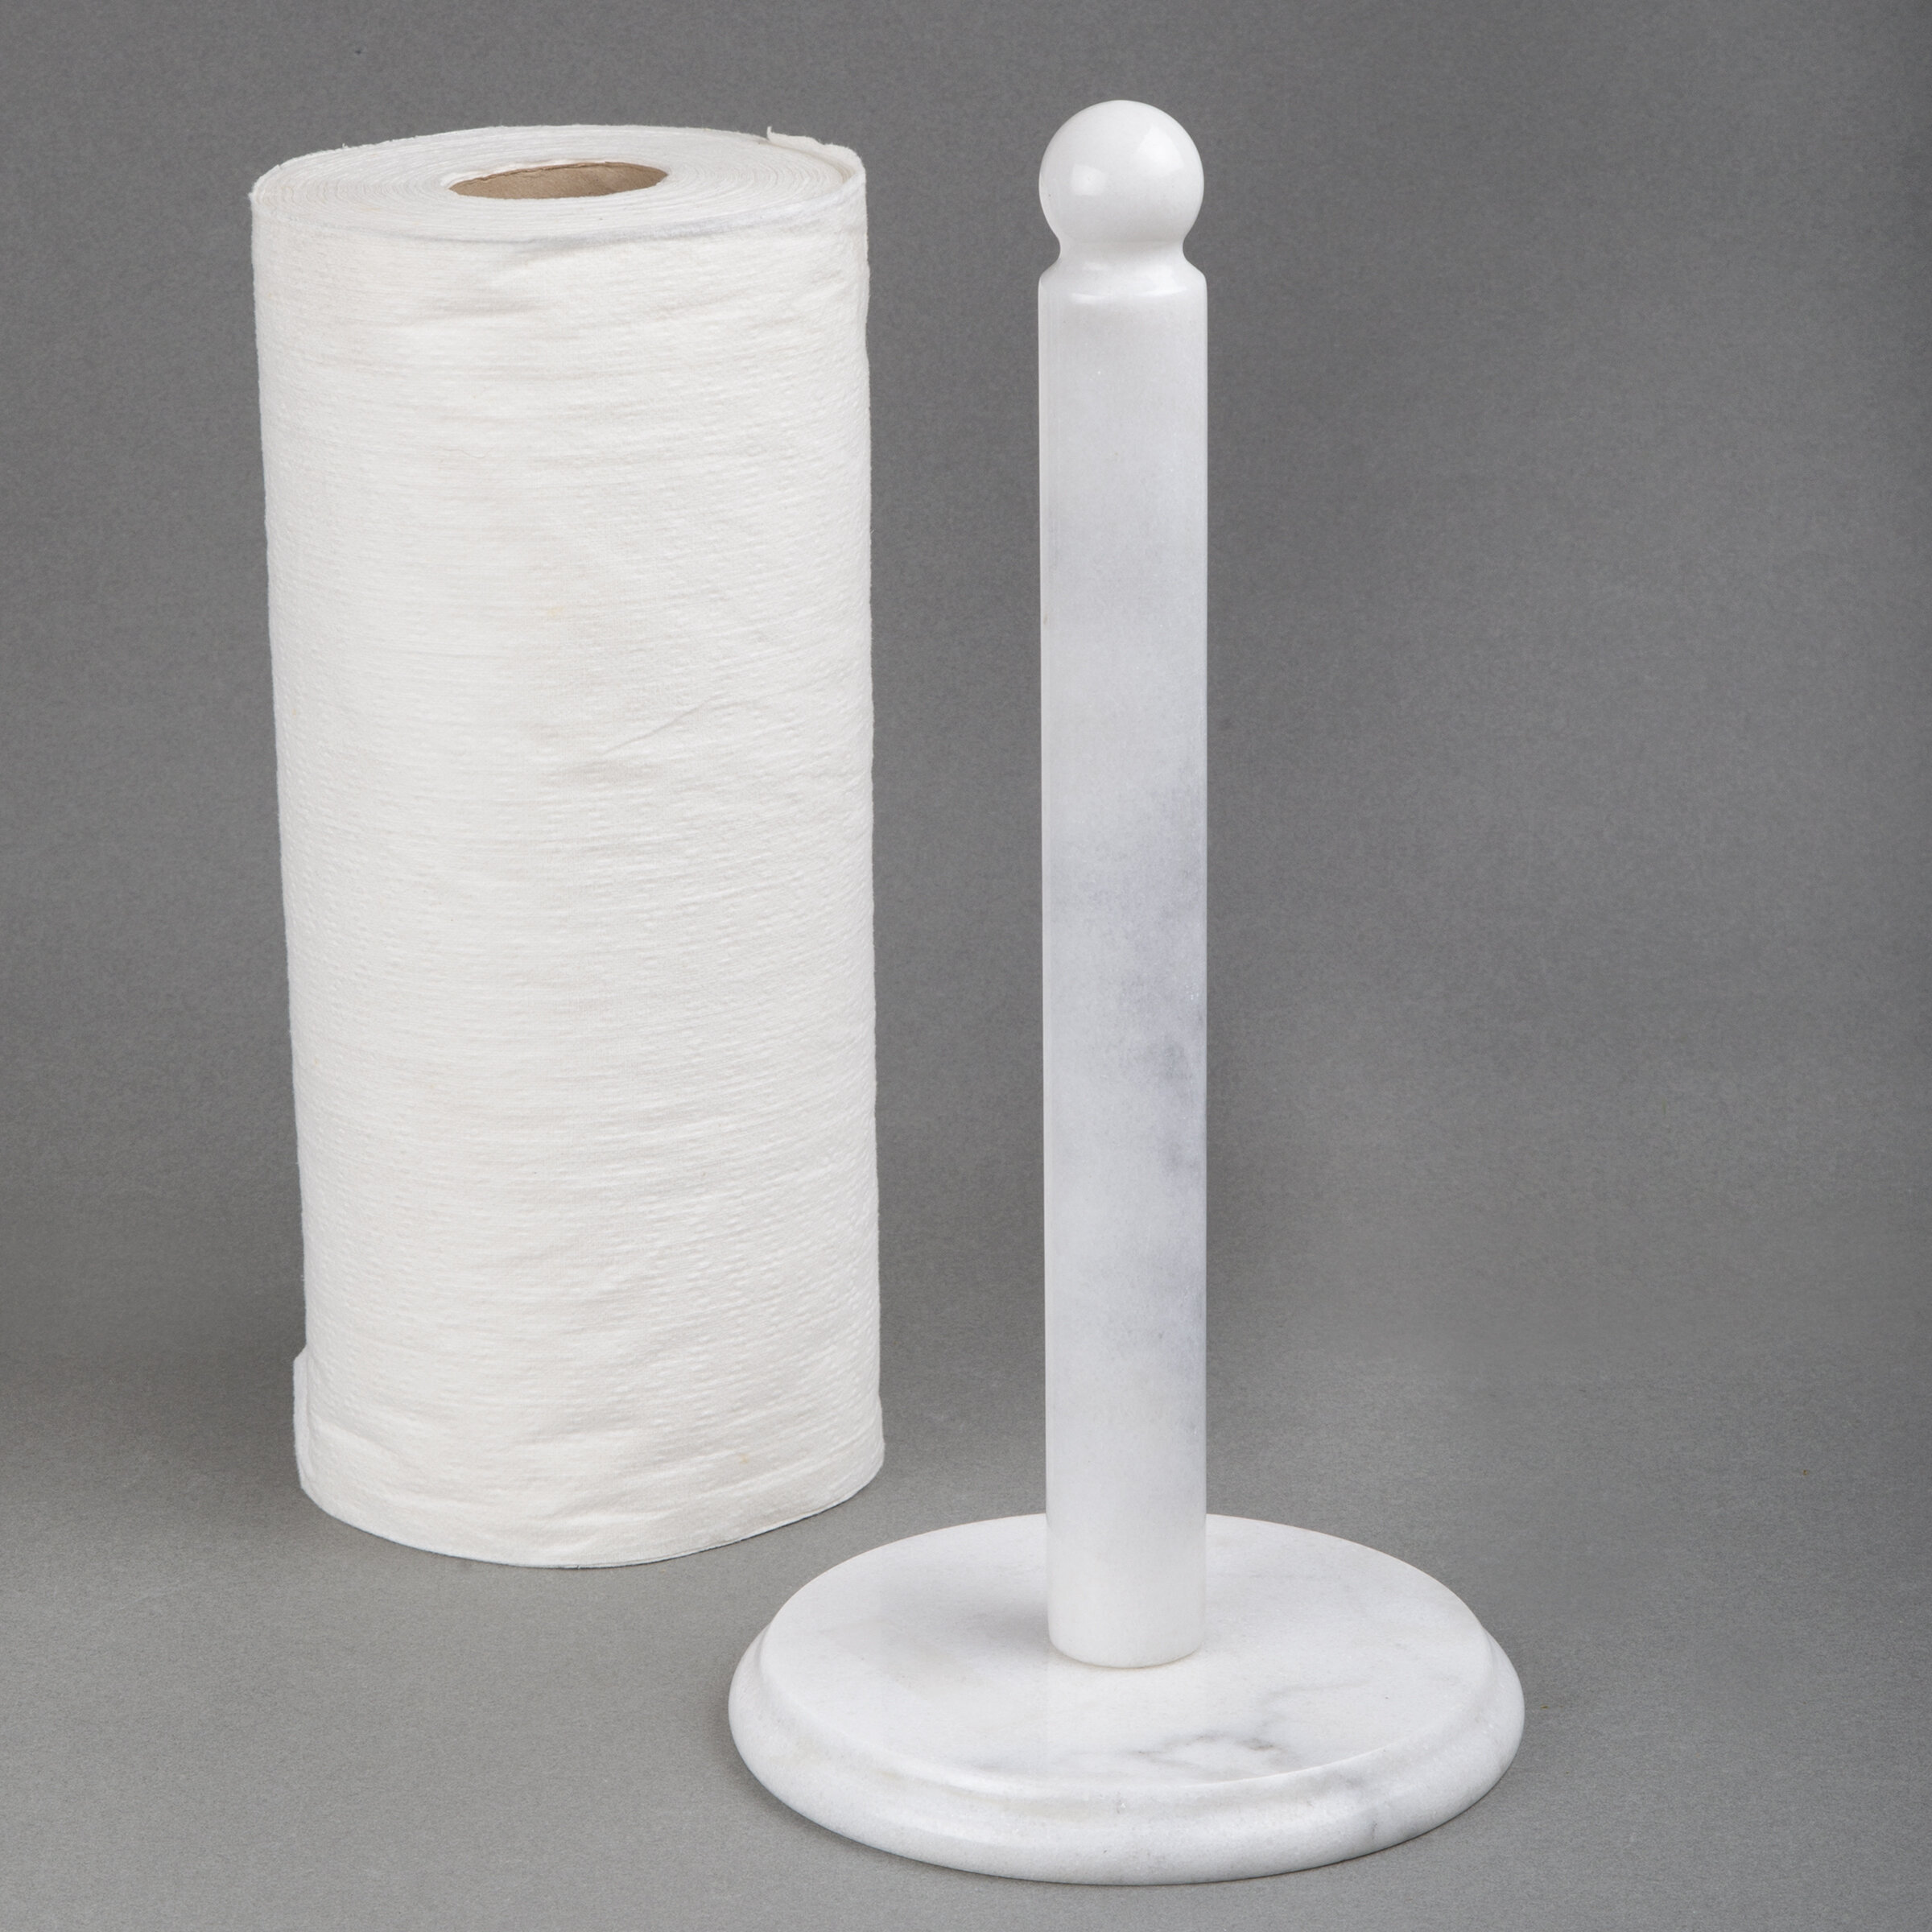 Deluxe Marble Upright Dispenser Free Standing Paper Towel Holder